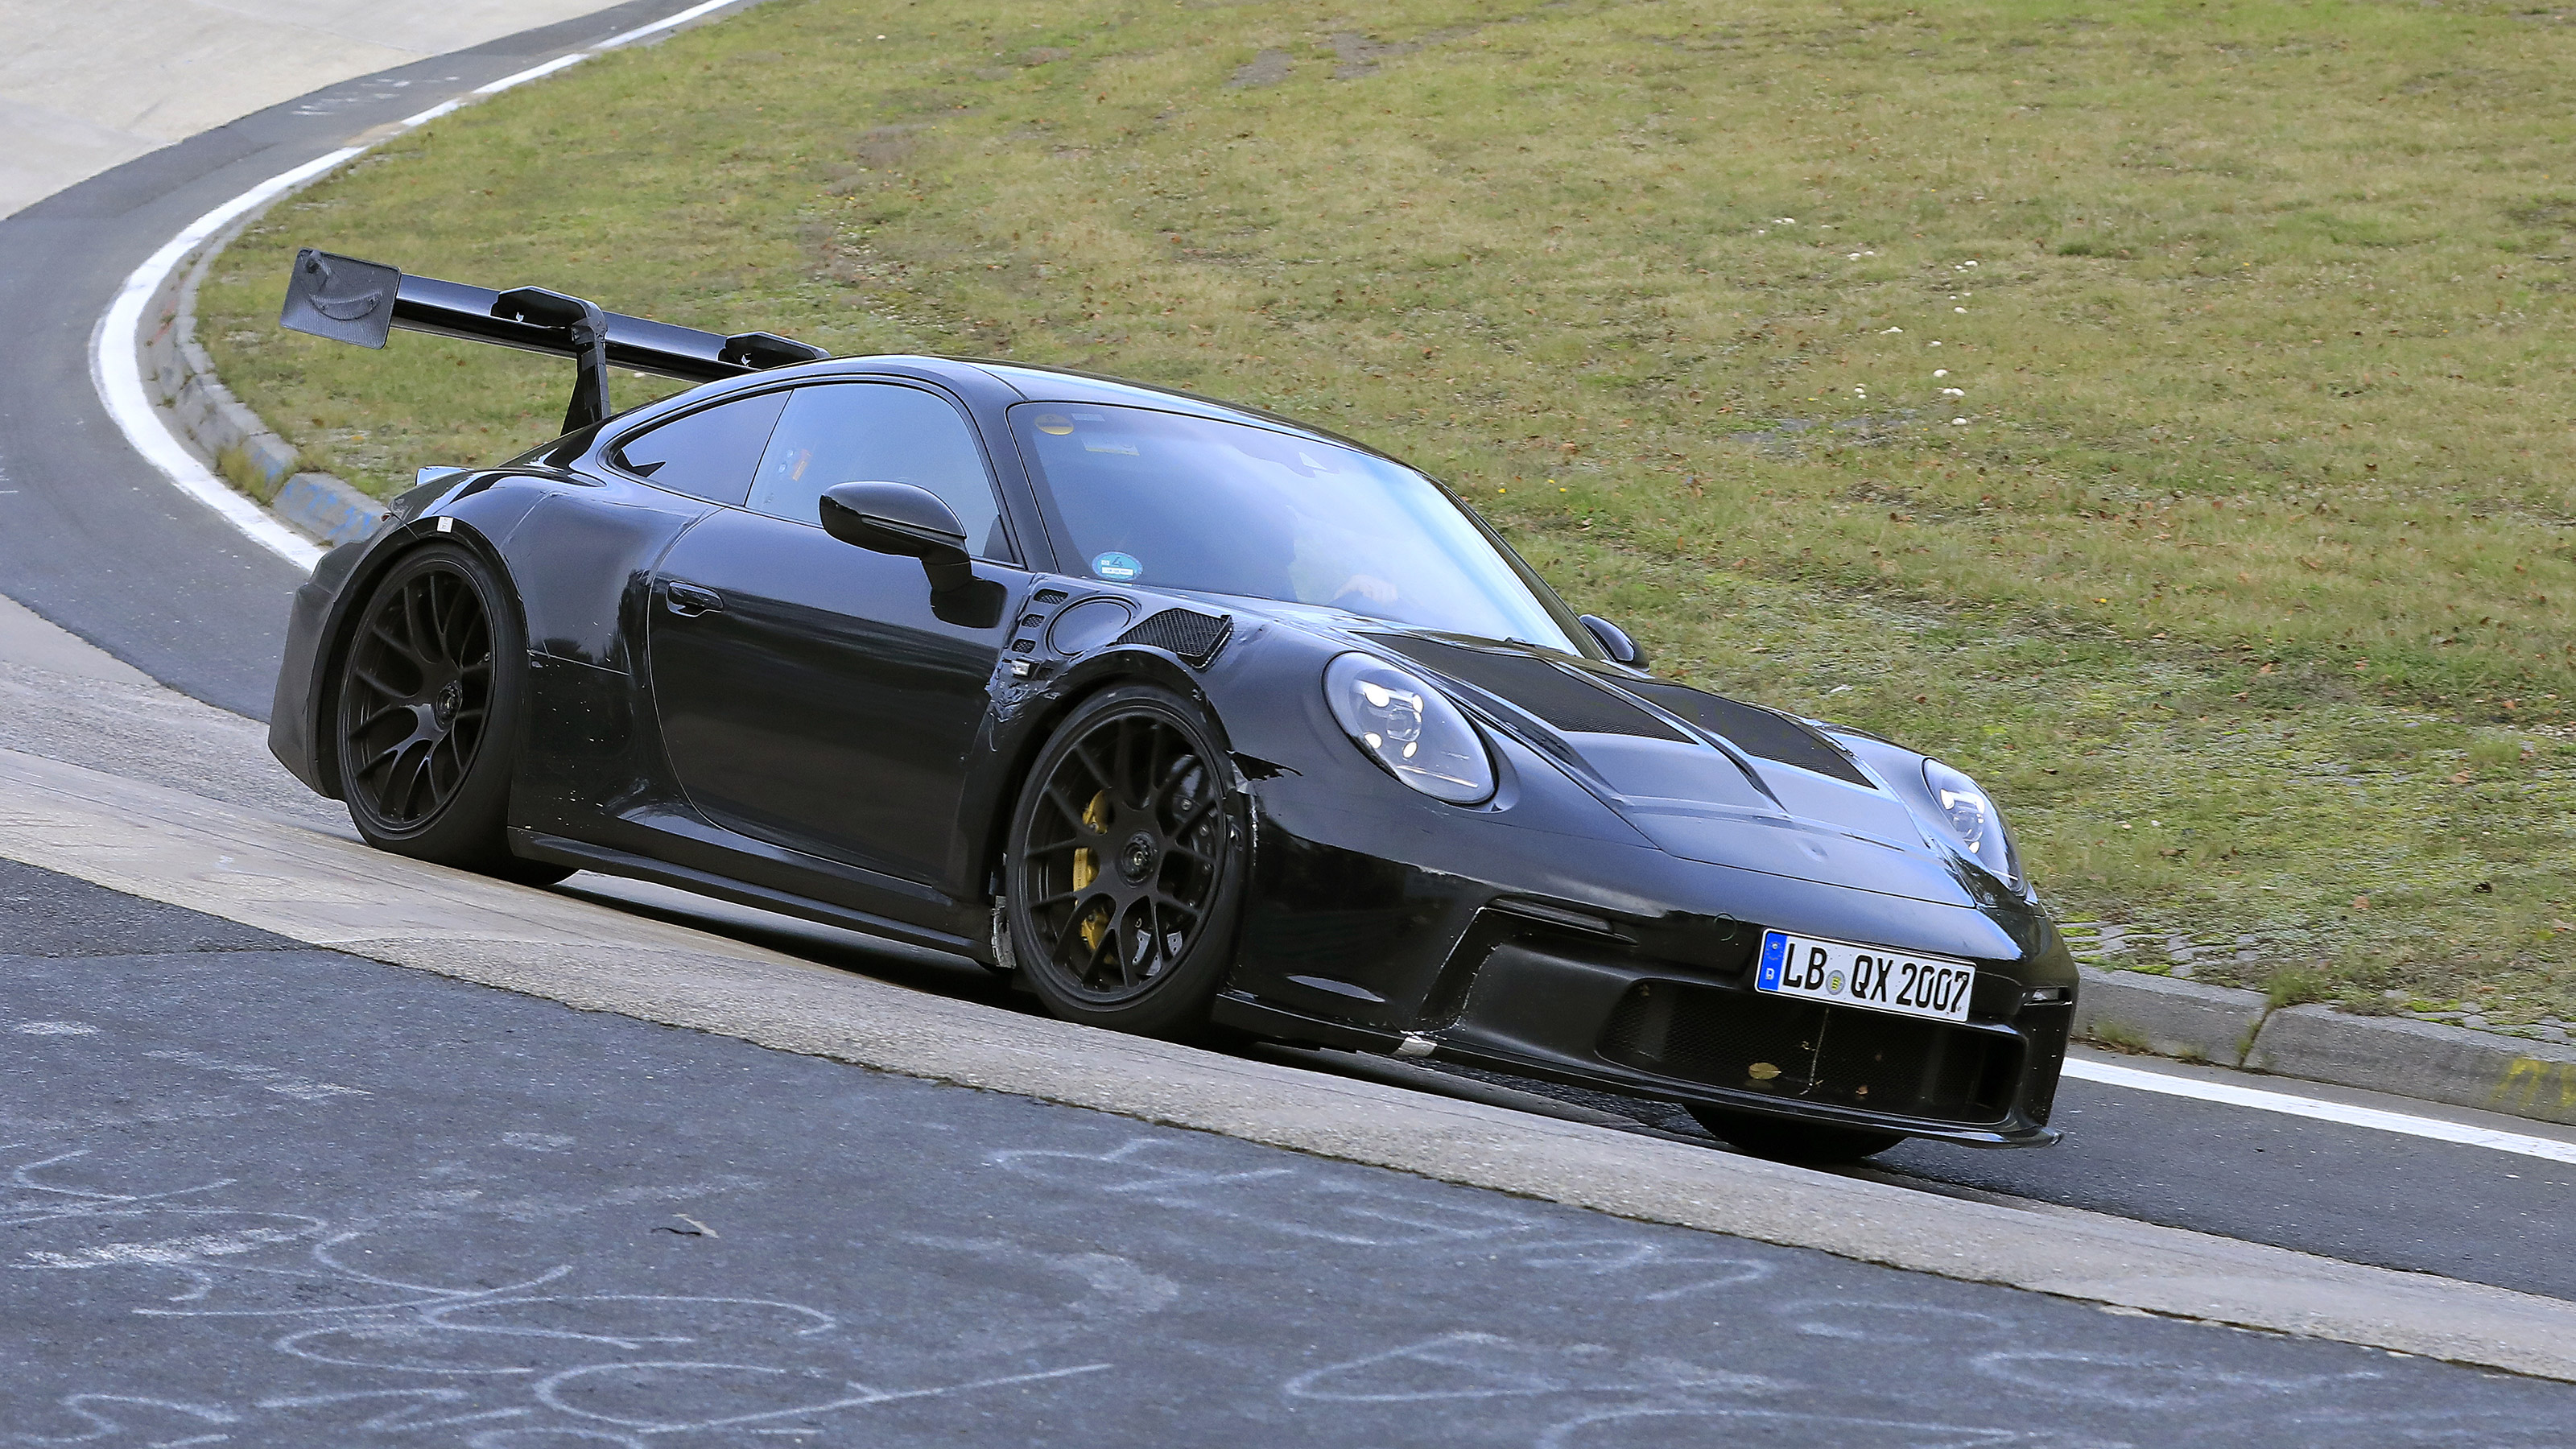 New 992 Porsche 911 Gt3 Rs Spied Testing At The Nurburgring Evo